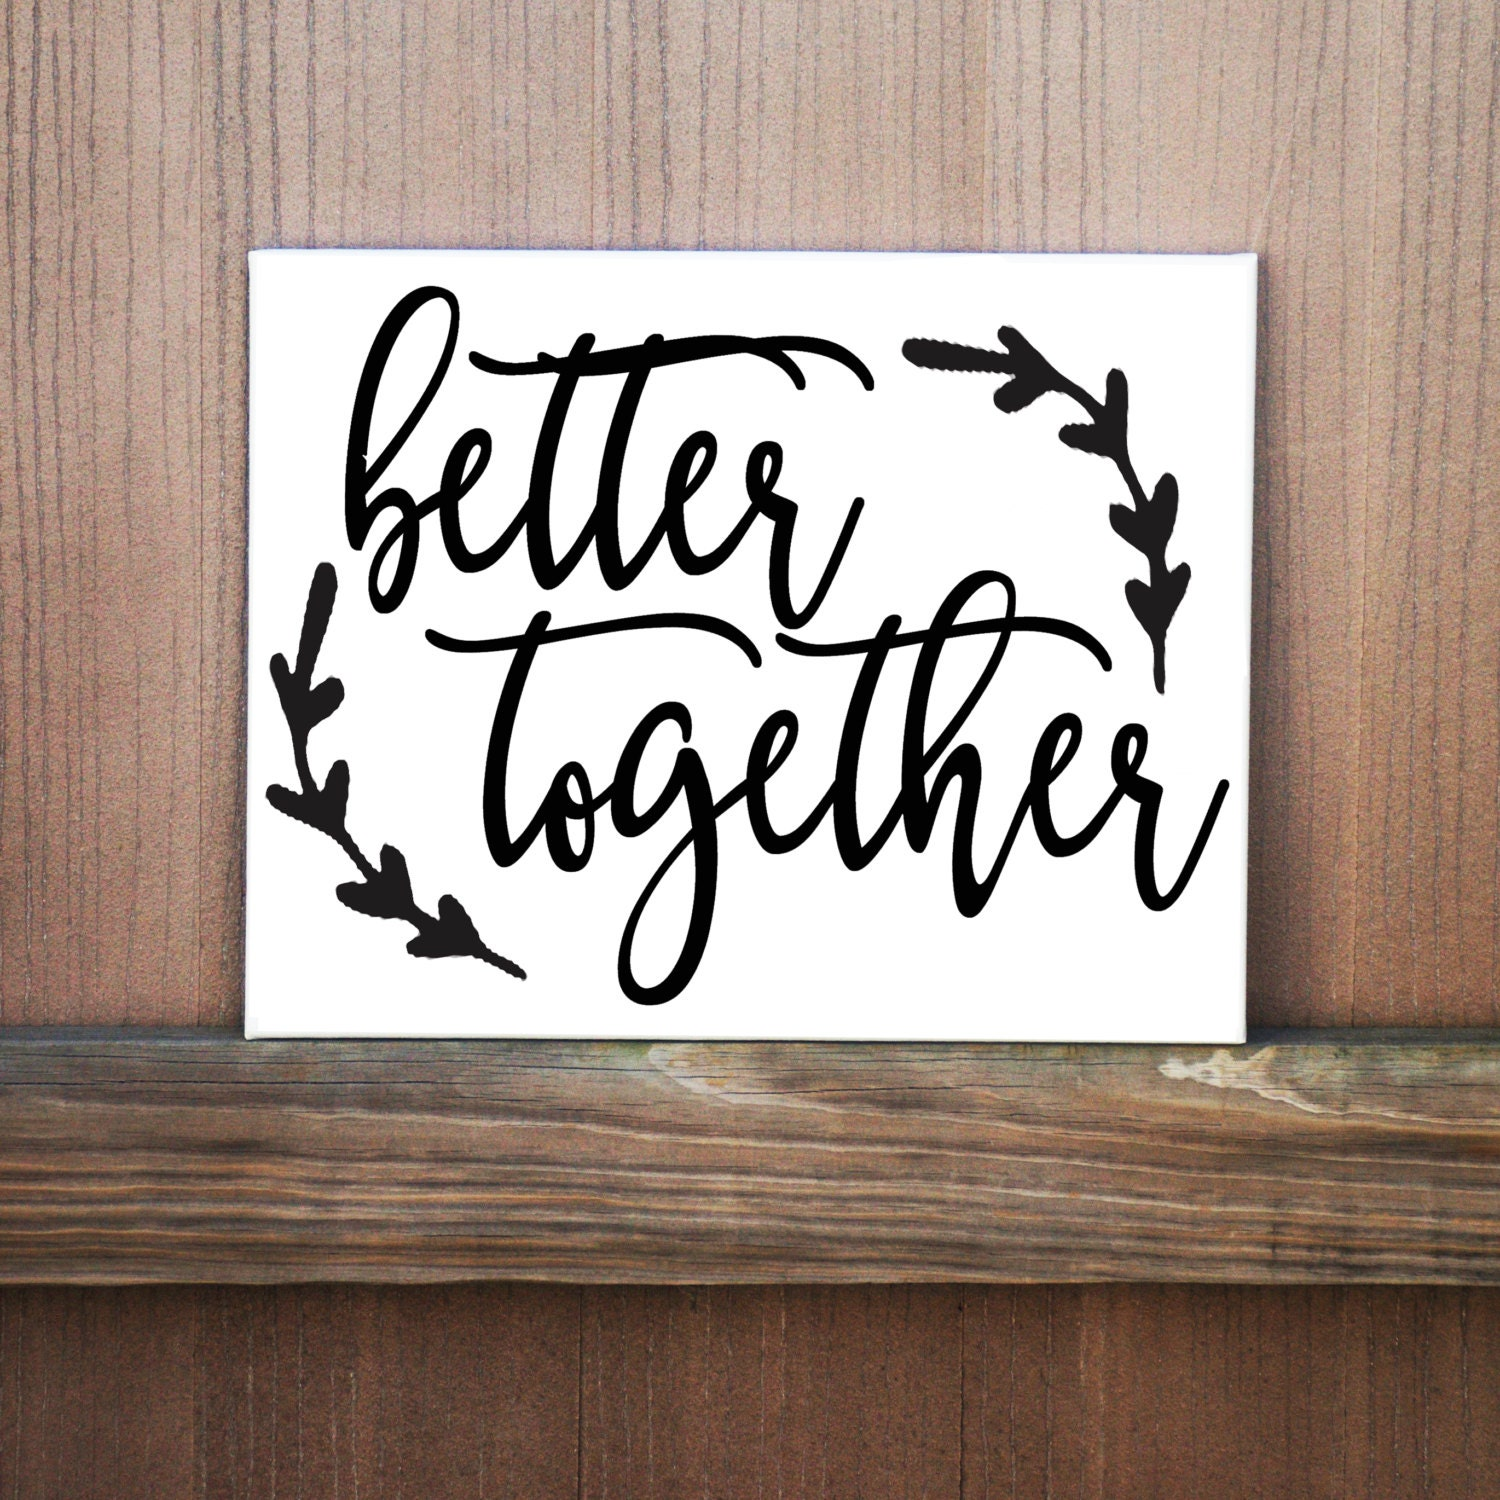 Love Decor Signs: Better Together Sign Love Quote Sign Home Decor Wedding